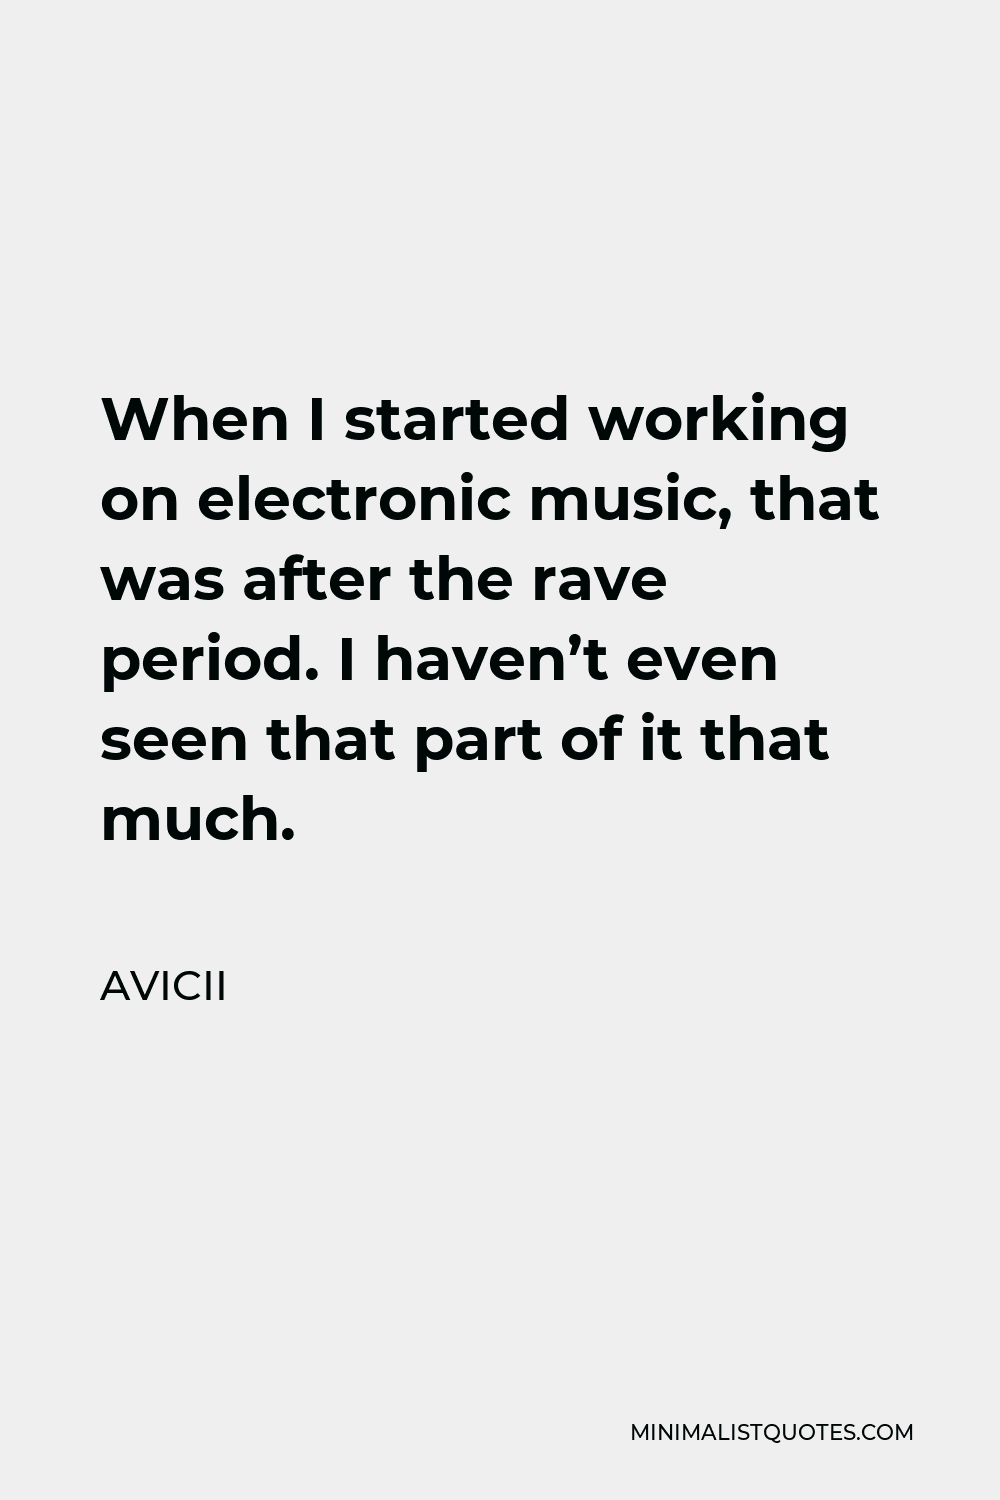 Avicii Quote - When I started working on electronic music, that was after the rave period. I haven't even seen that part of it that much.